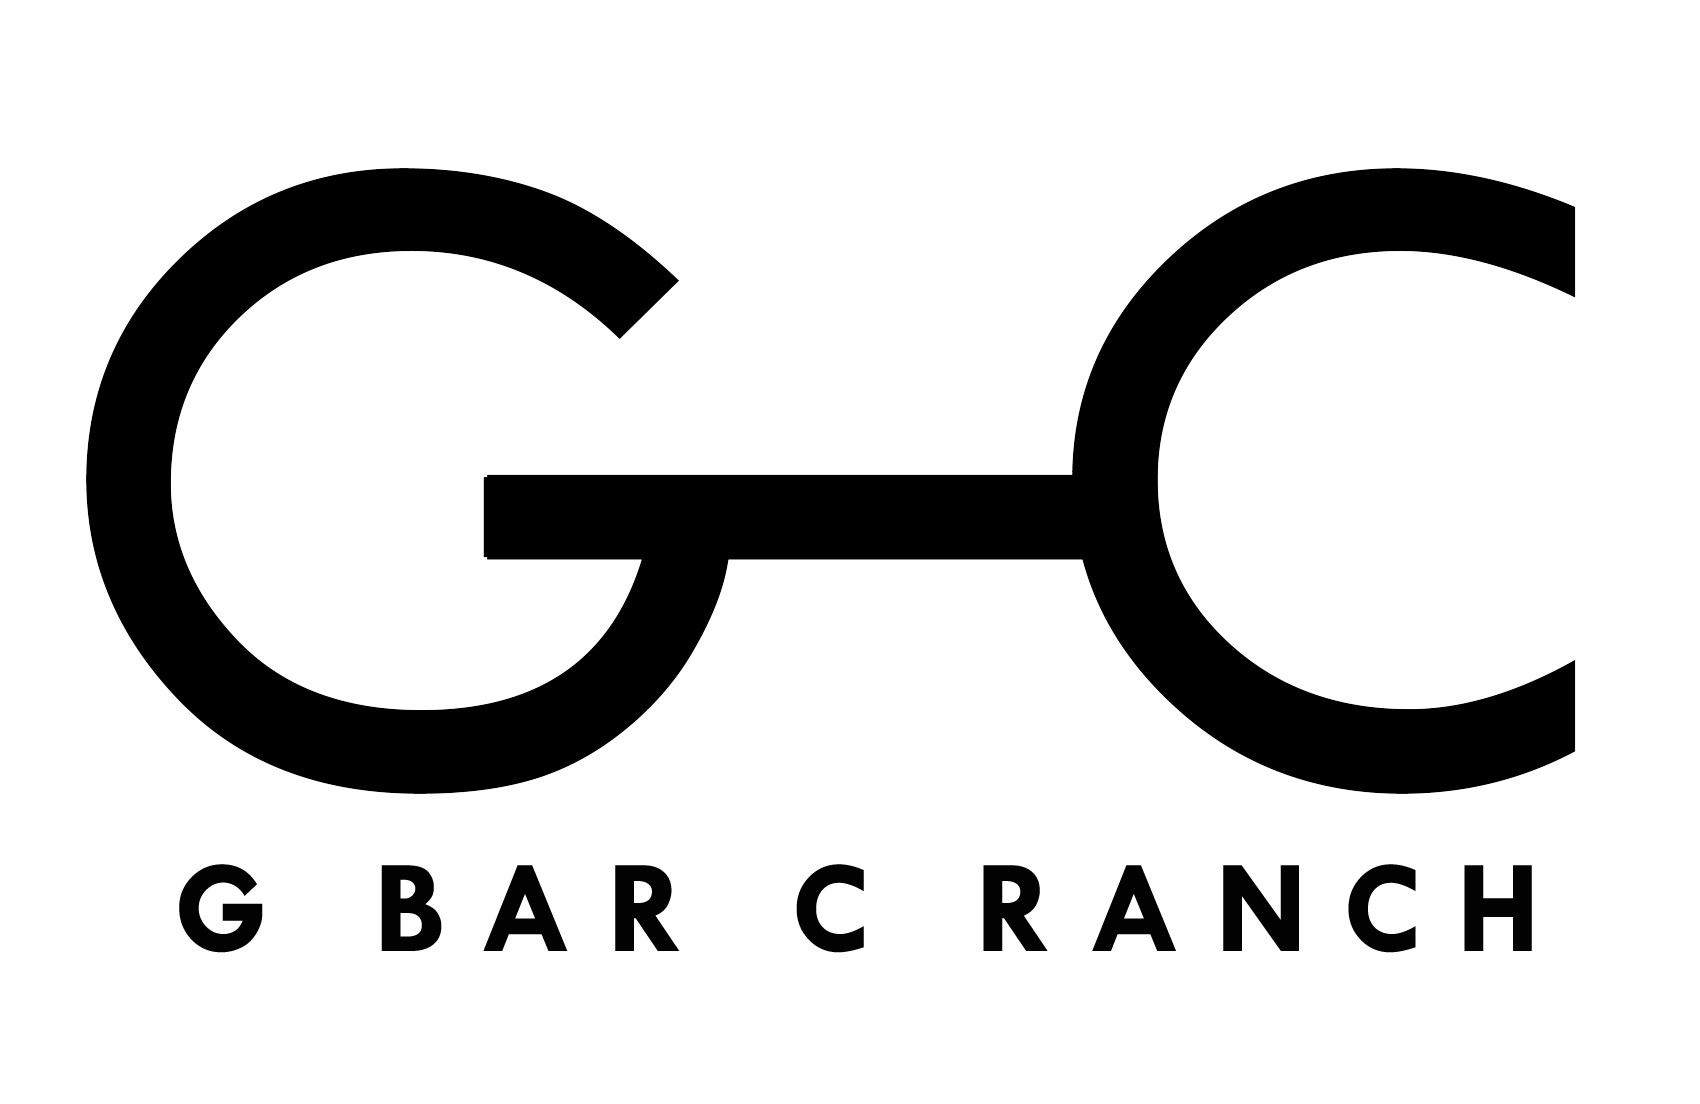 G Bar C Ranch Opens in new window